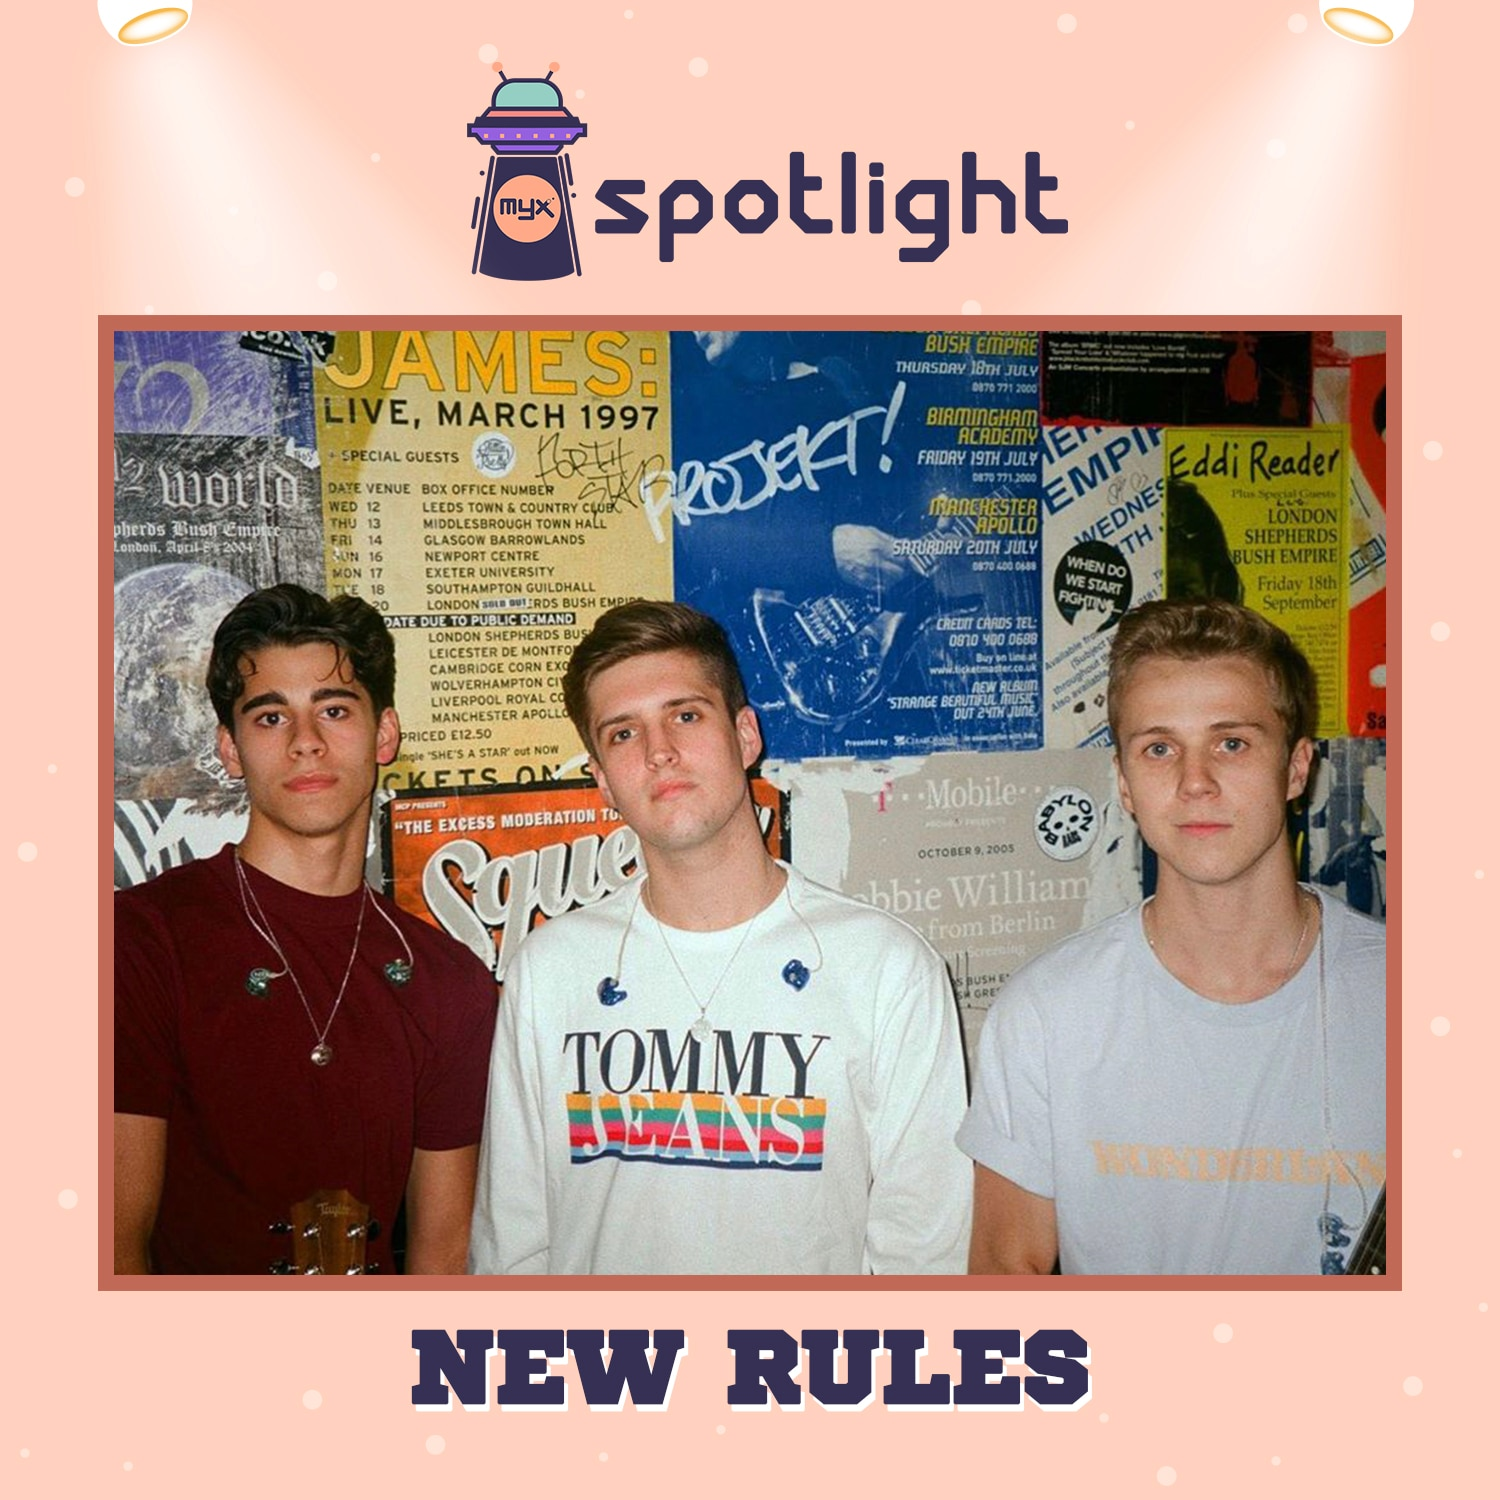 MYX Spotlight artist New Rules